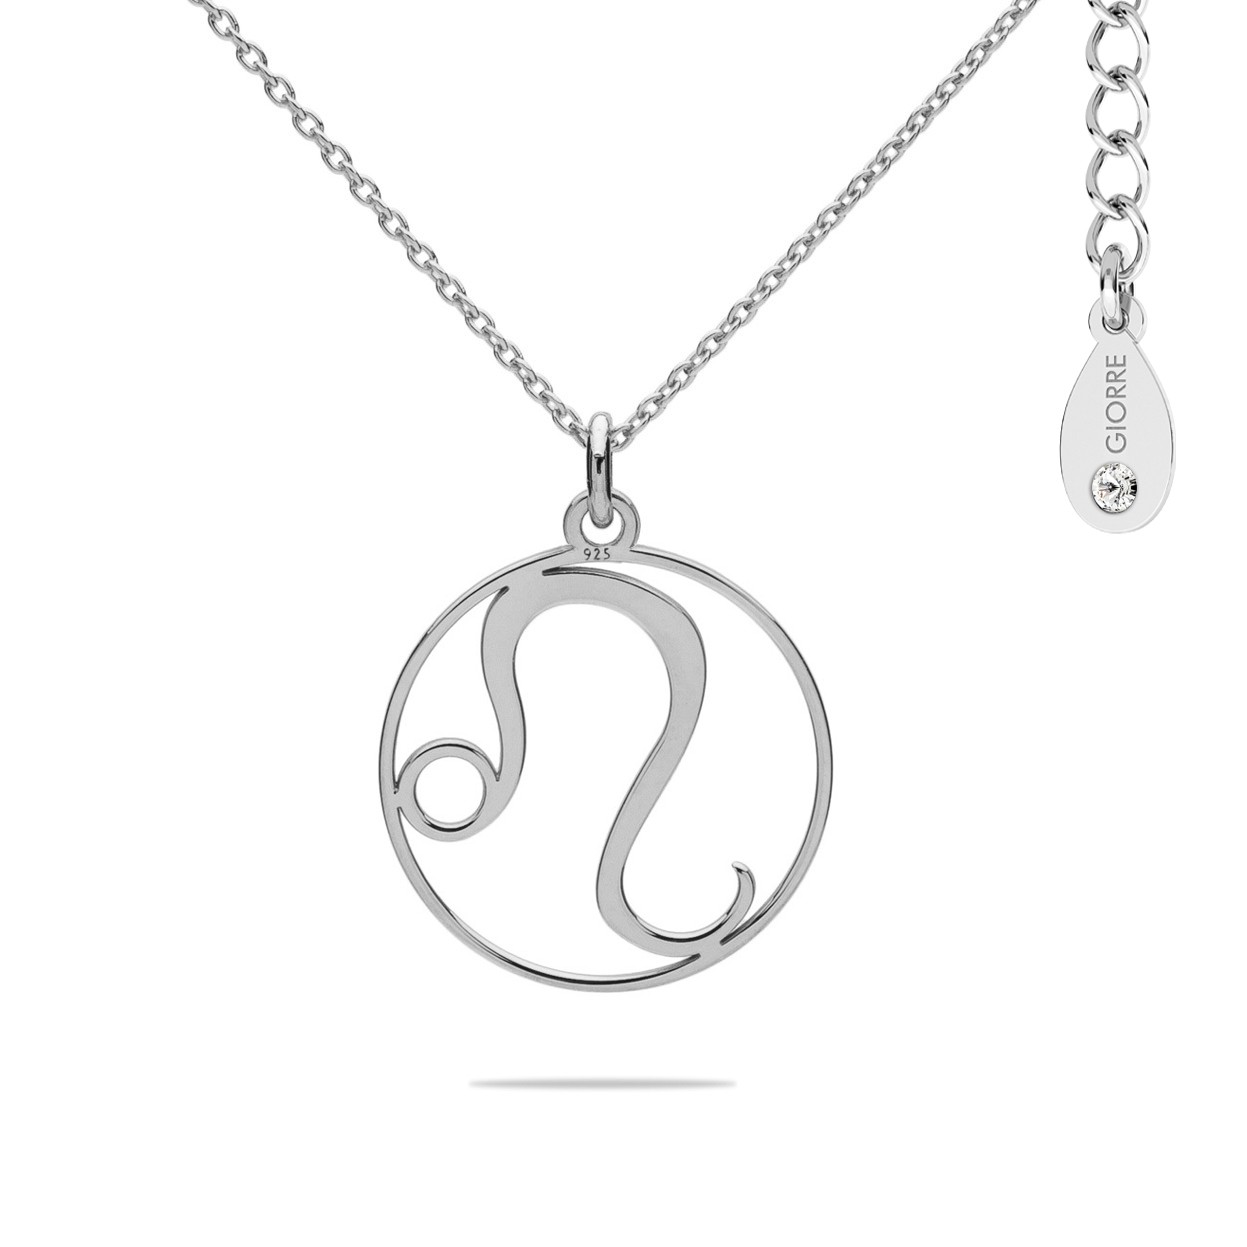 LION zodiac sign necklace with Swarovski Crystals sterling silver 925